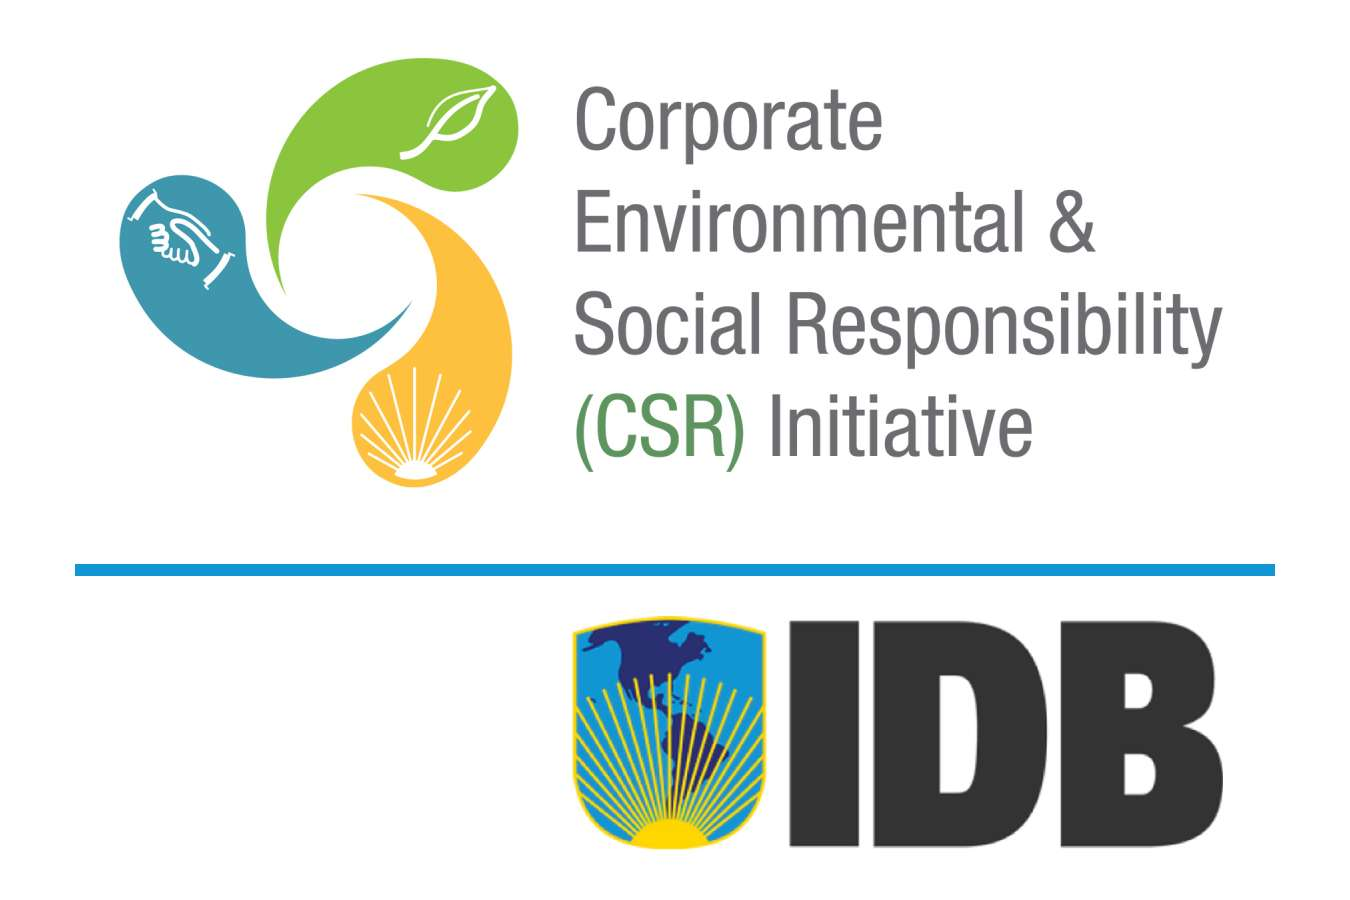 IDB PREV : CSR Initiative logo and IDB usage